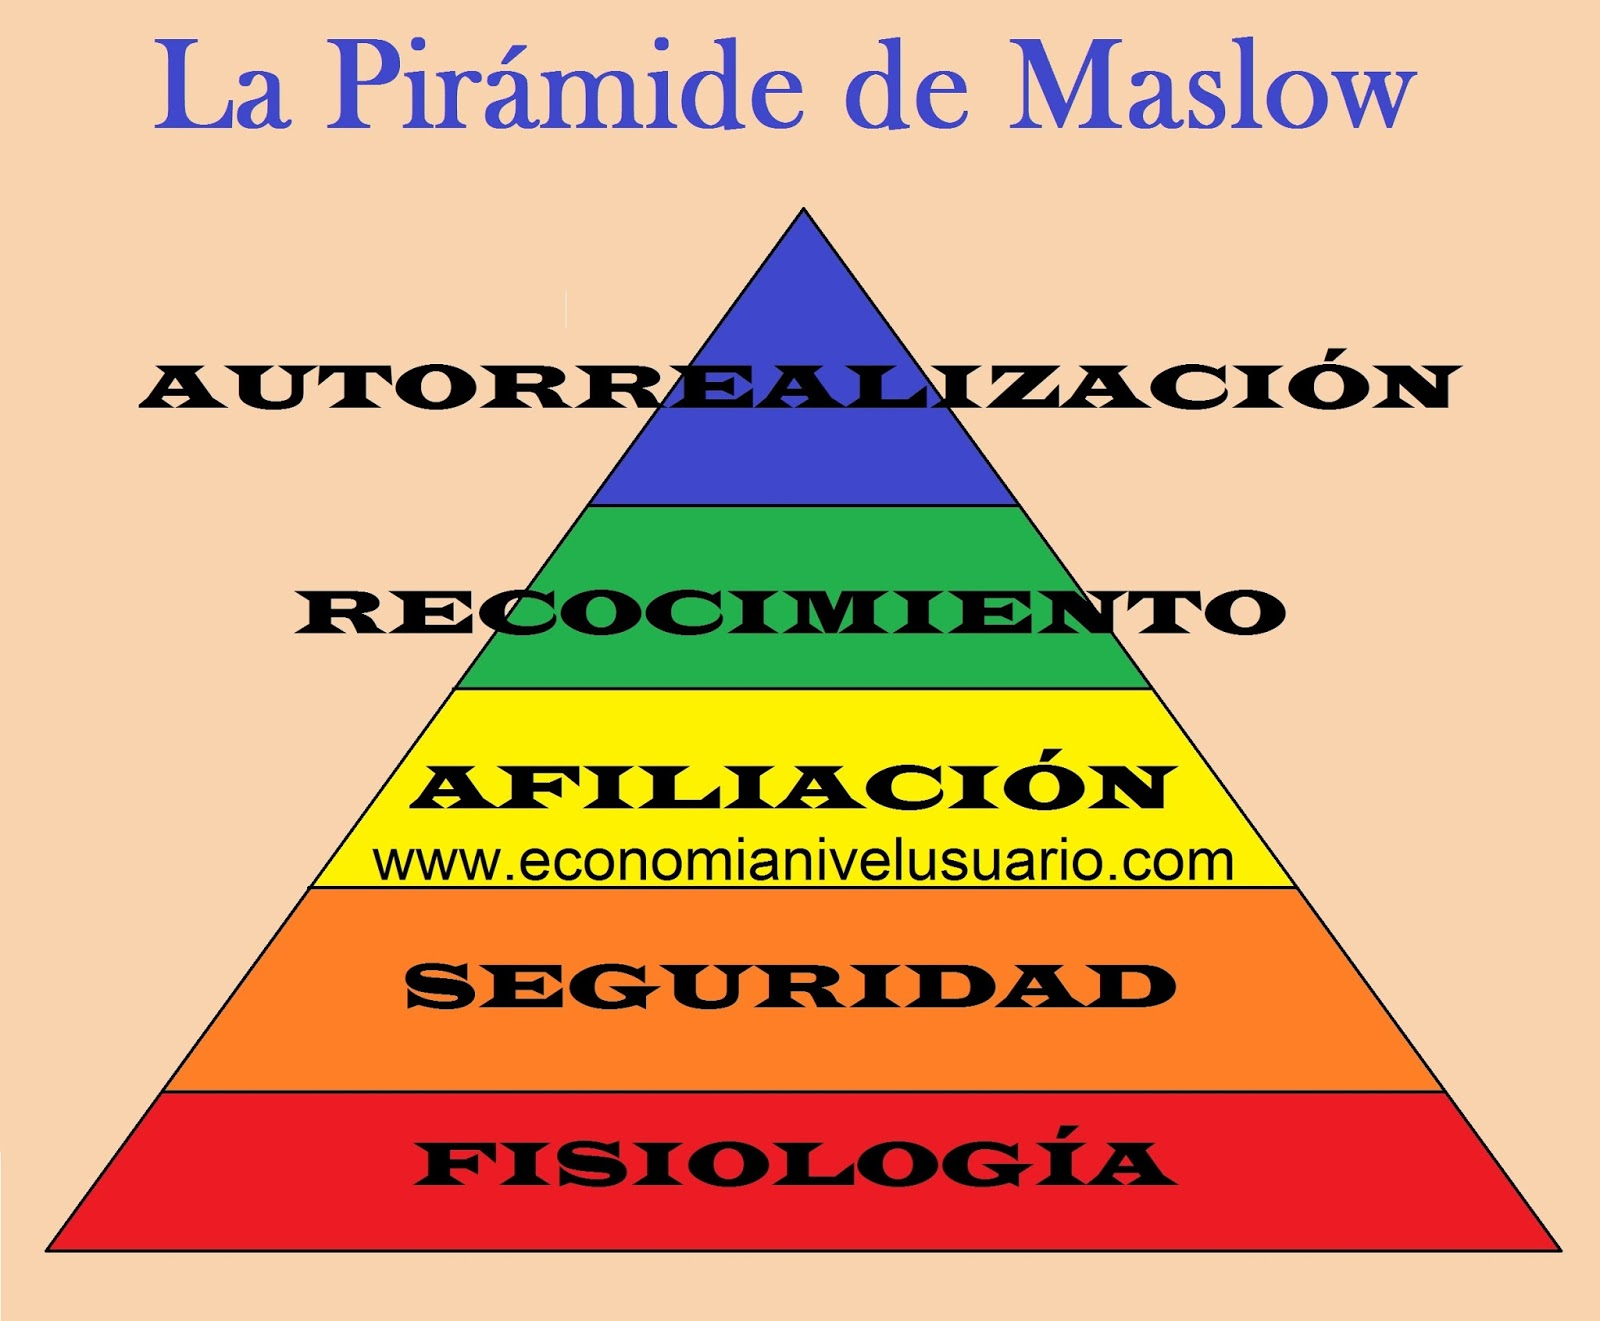 erikson vs maslow Essays - largest database of quality sample essays and research papers on erikson vs maslow.